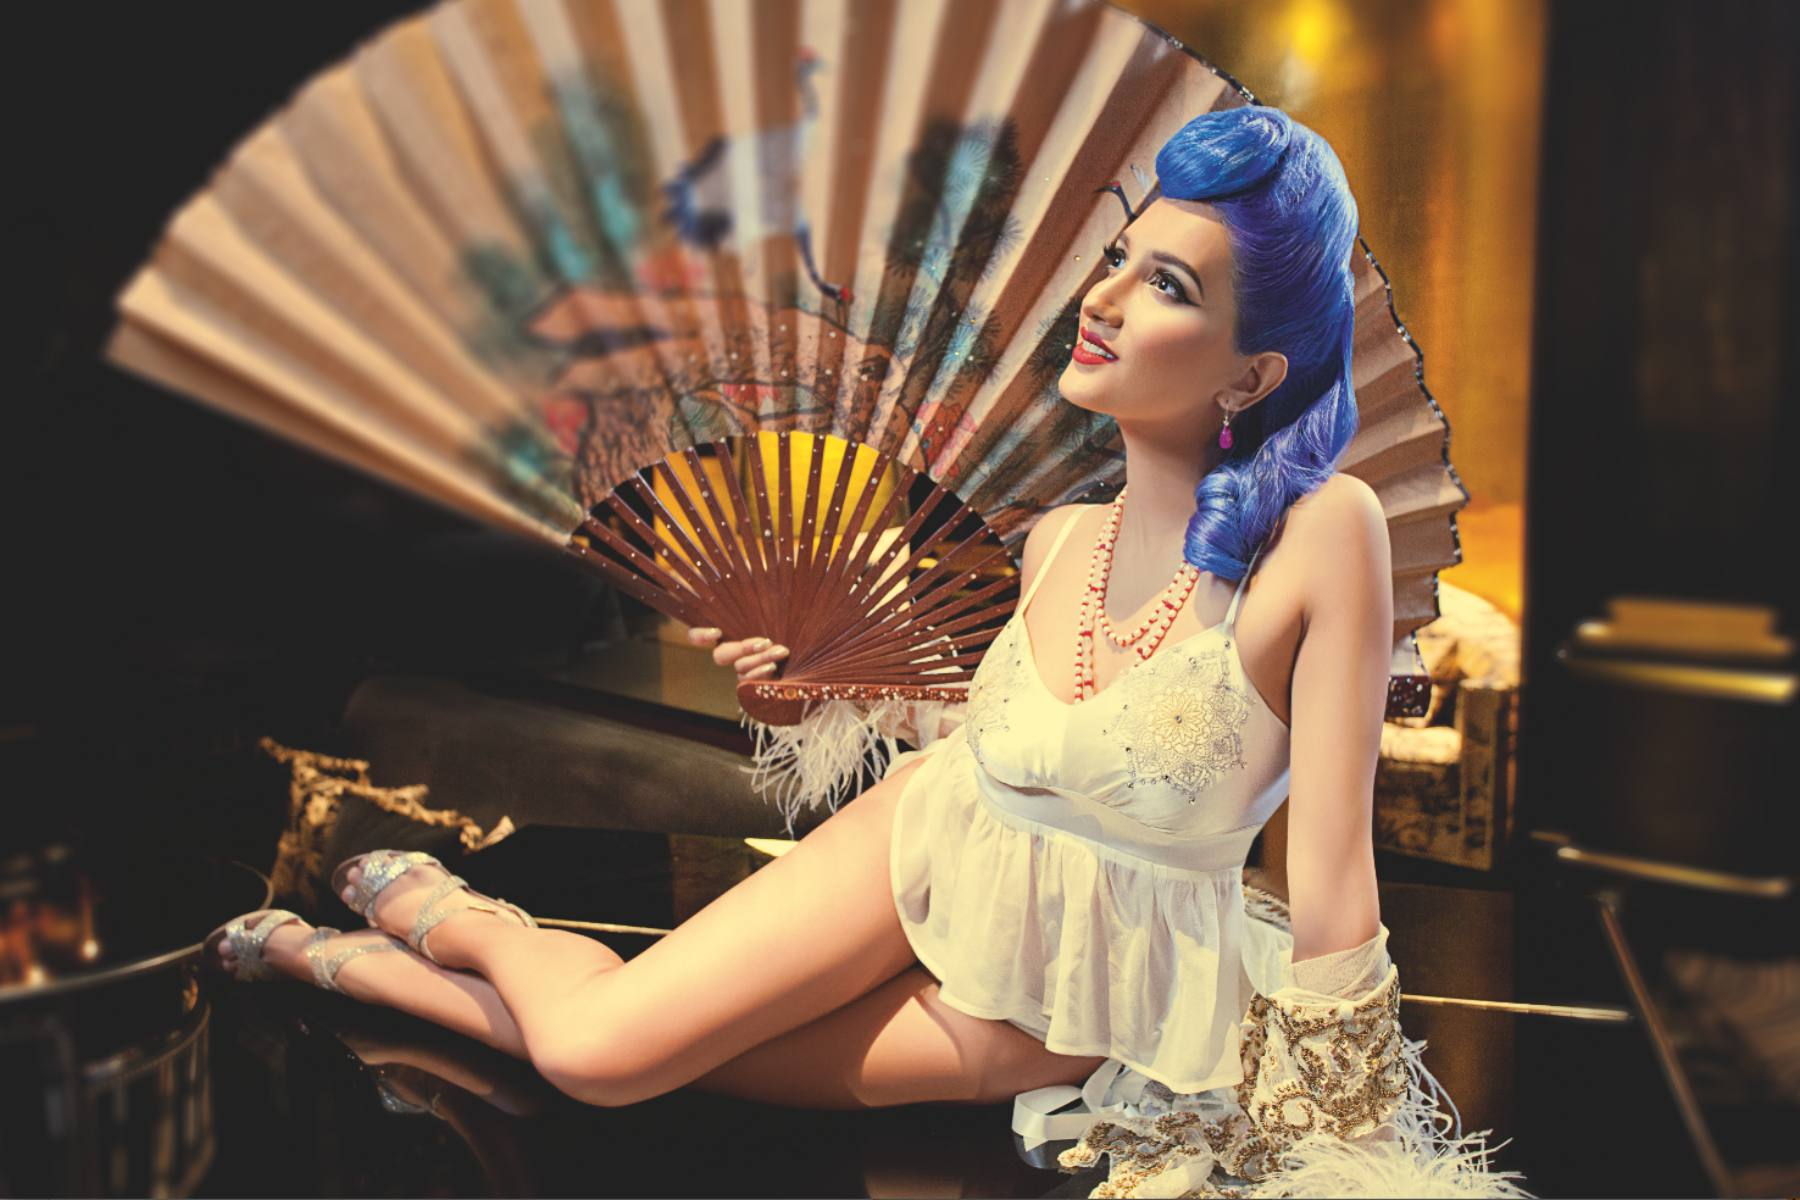 Can Burlesque Help Towards Gender Equality?